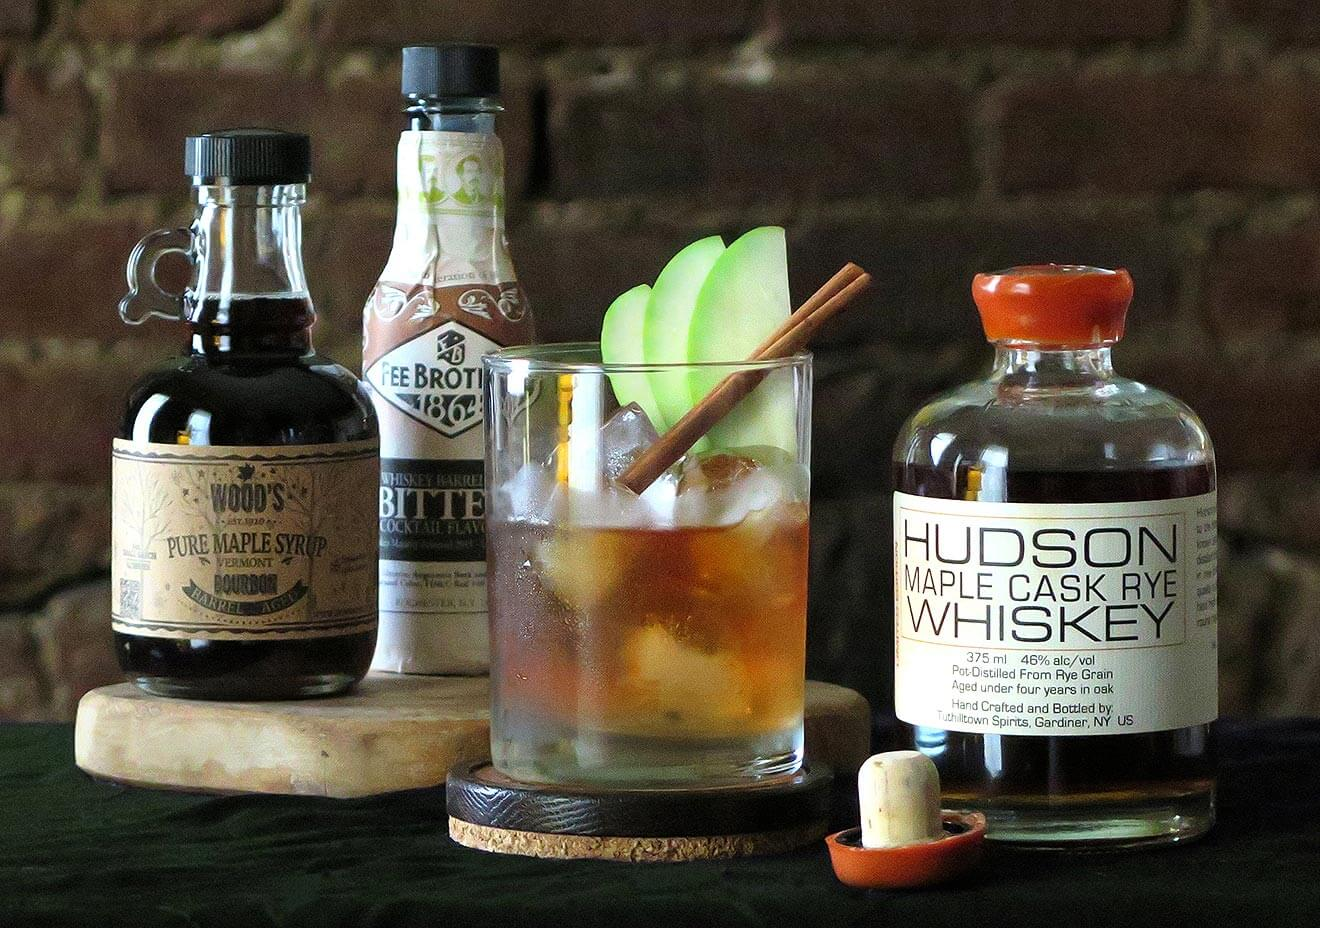 Traditional Maple Fashioned Cocktail Hudson Whiskey Maple Cask Rye Cocktails Chilled Magazine Rye Whiskey Cocktails Winter Rye Whisky Cocktails nice food Rye Whiskey Cocktails